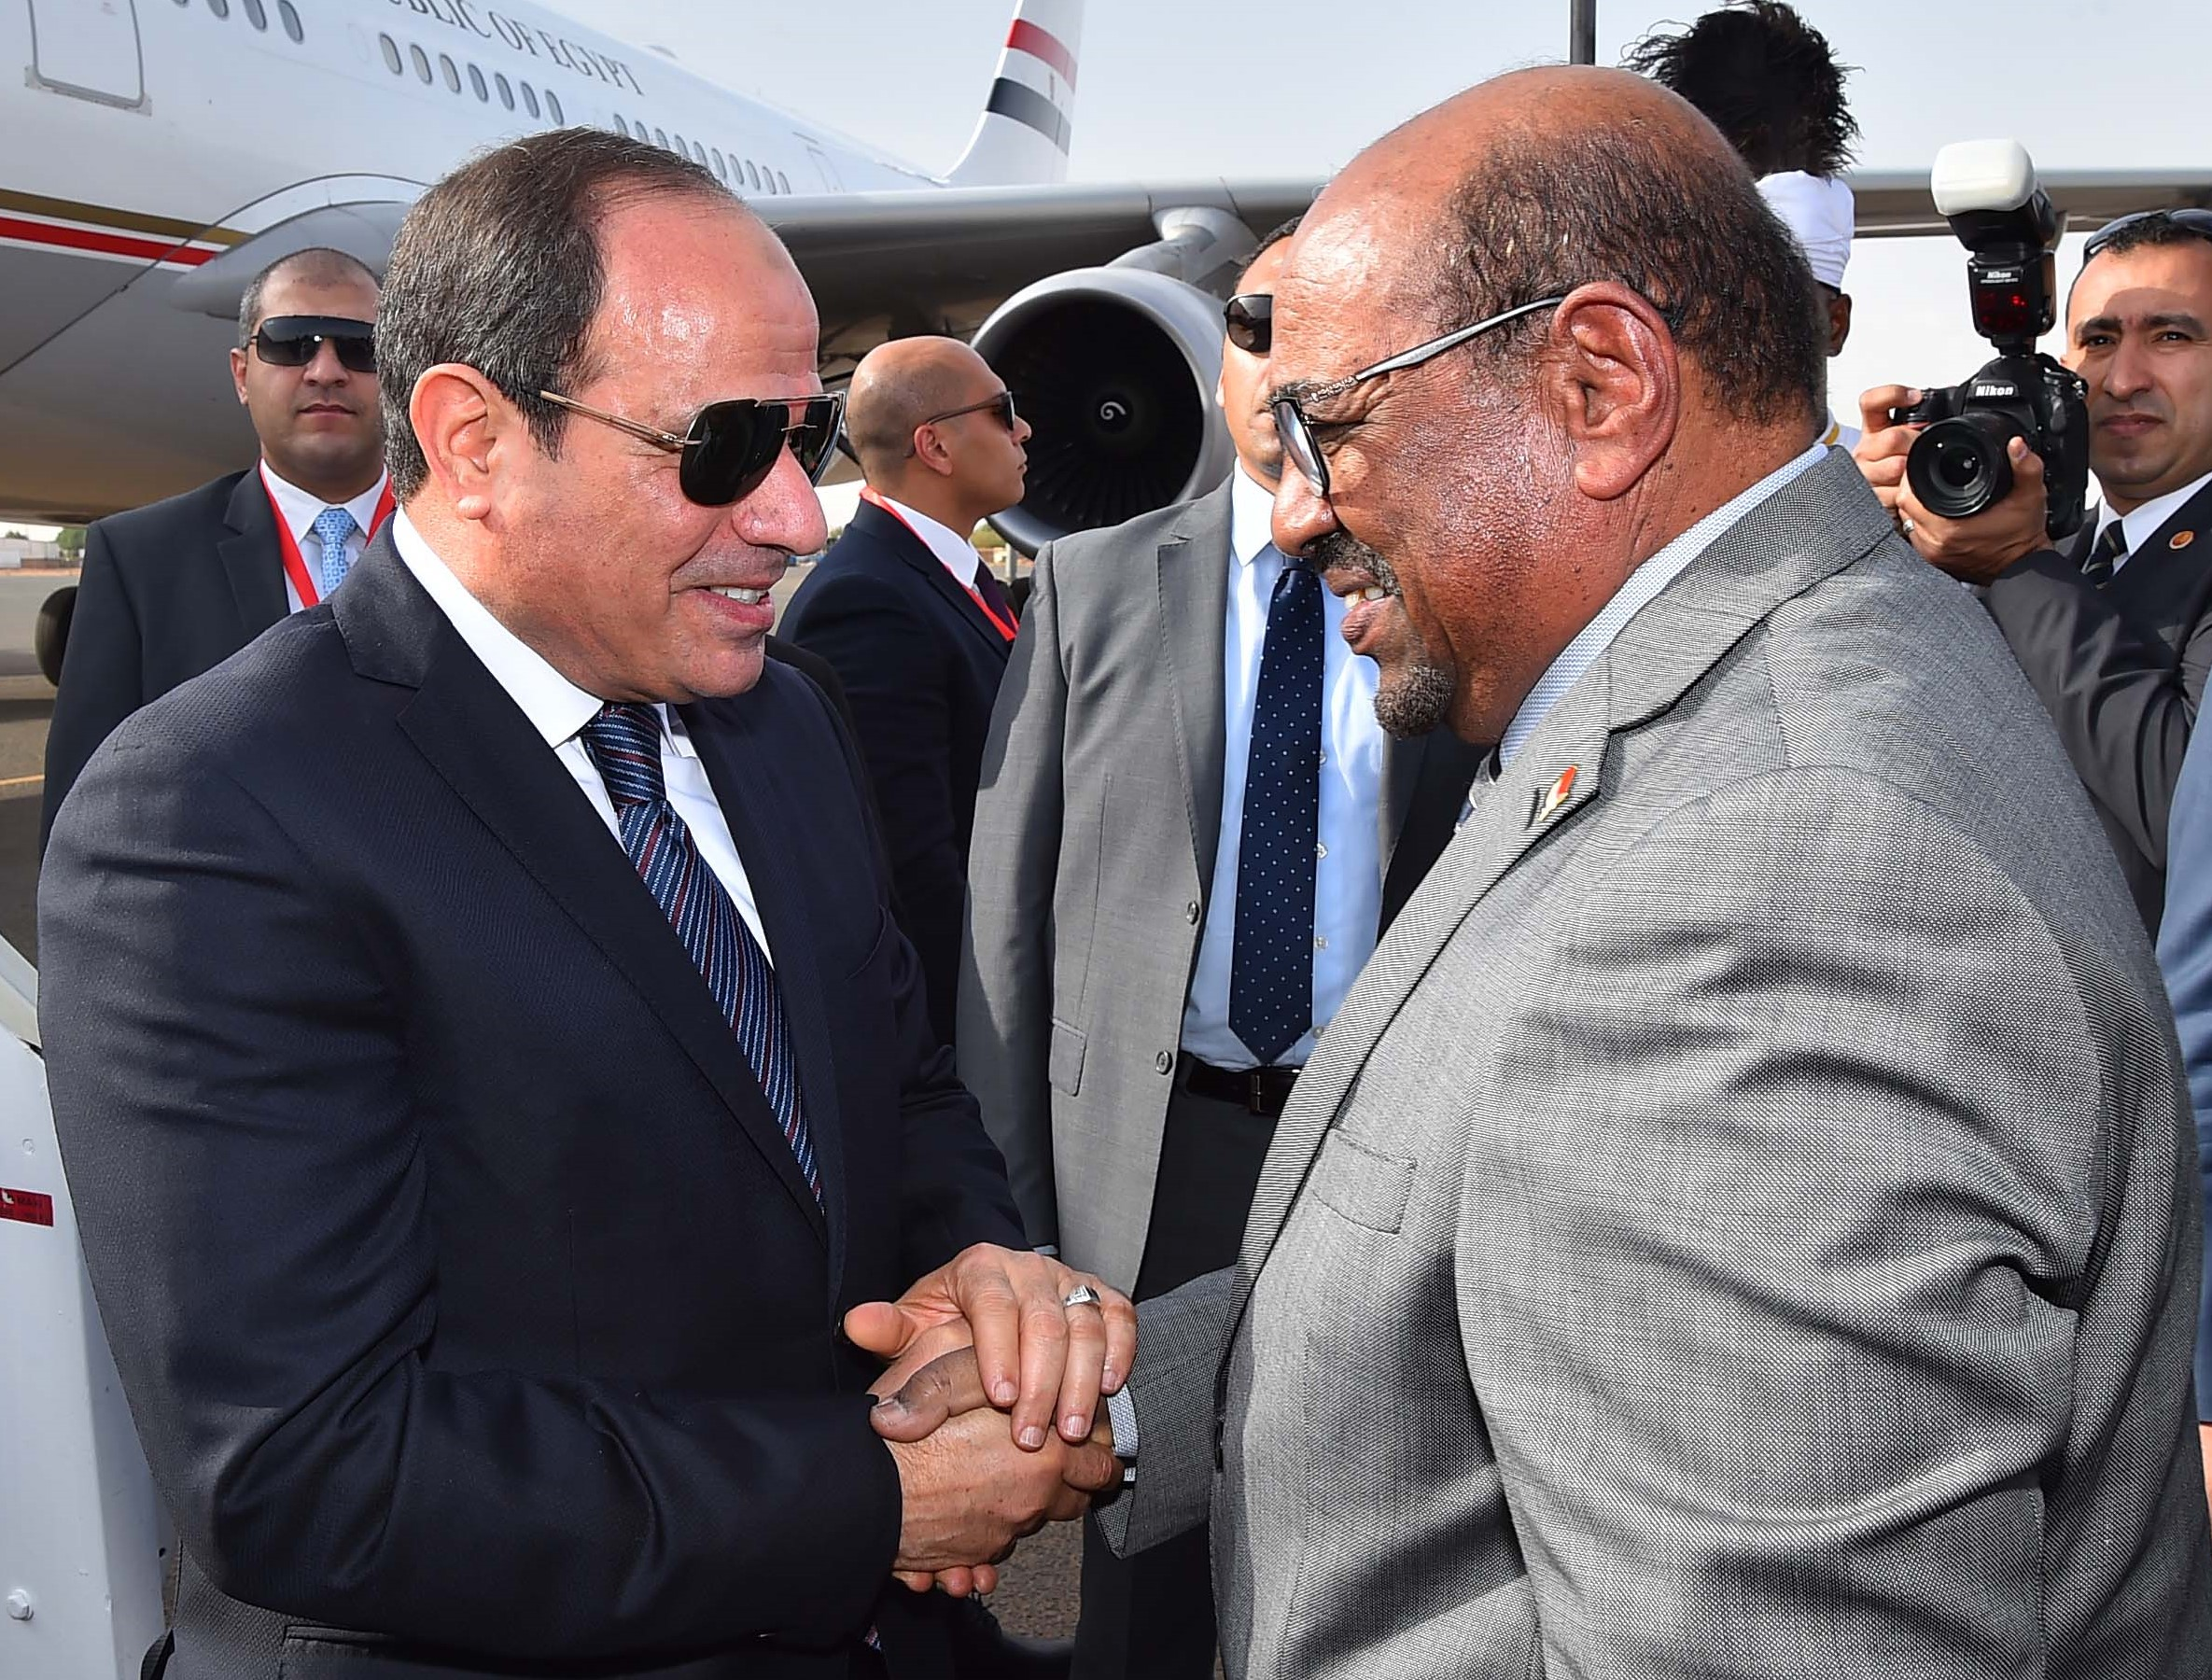 Sudanese President Omar al-Bashir (R) greeting his Egyptian counterpart Abdel Fattah al-Sisi upon his arrival at Khartoum International Airport in the Sudanese capital on 19 July 2018 (AFP)